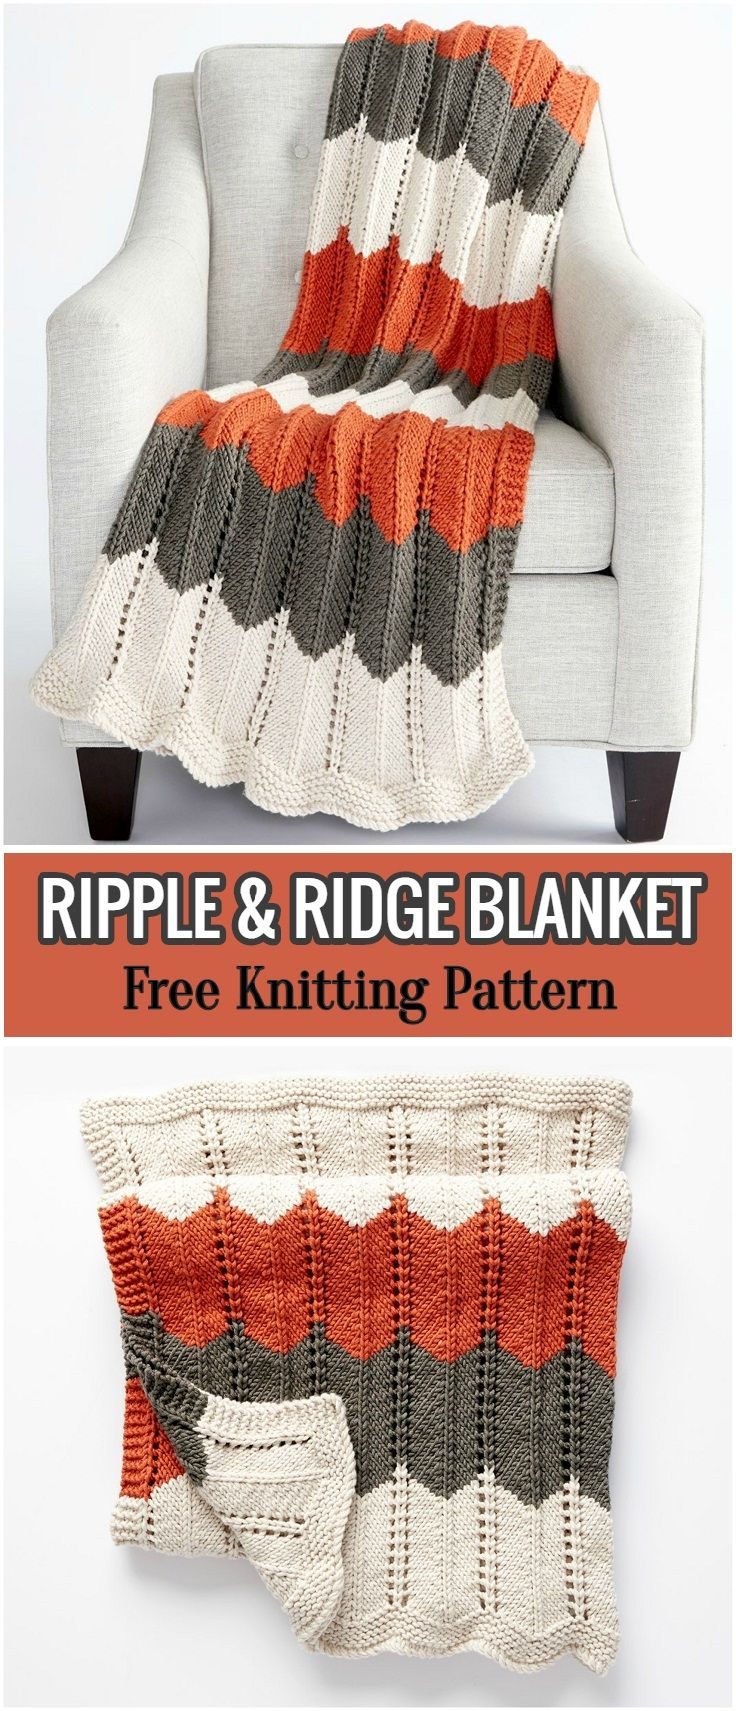 Bettdecken Zusammennähen Ripple Ridge Blanket Free Knitting Pattern Knitting